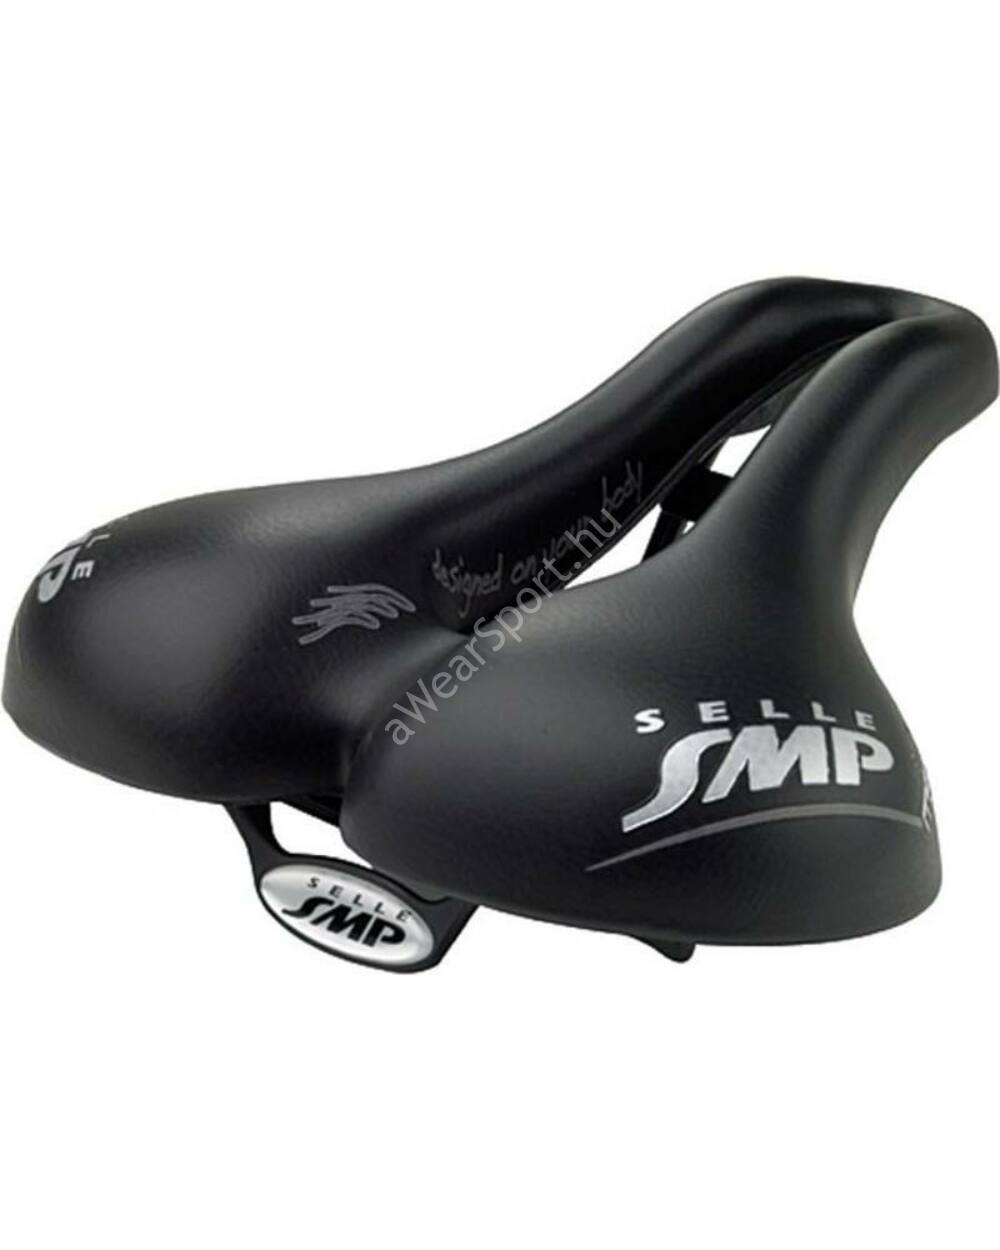 Selle SMP 4BIKE MARTIN TOURING Medium nyereg, fekete